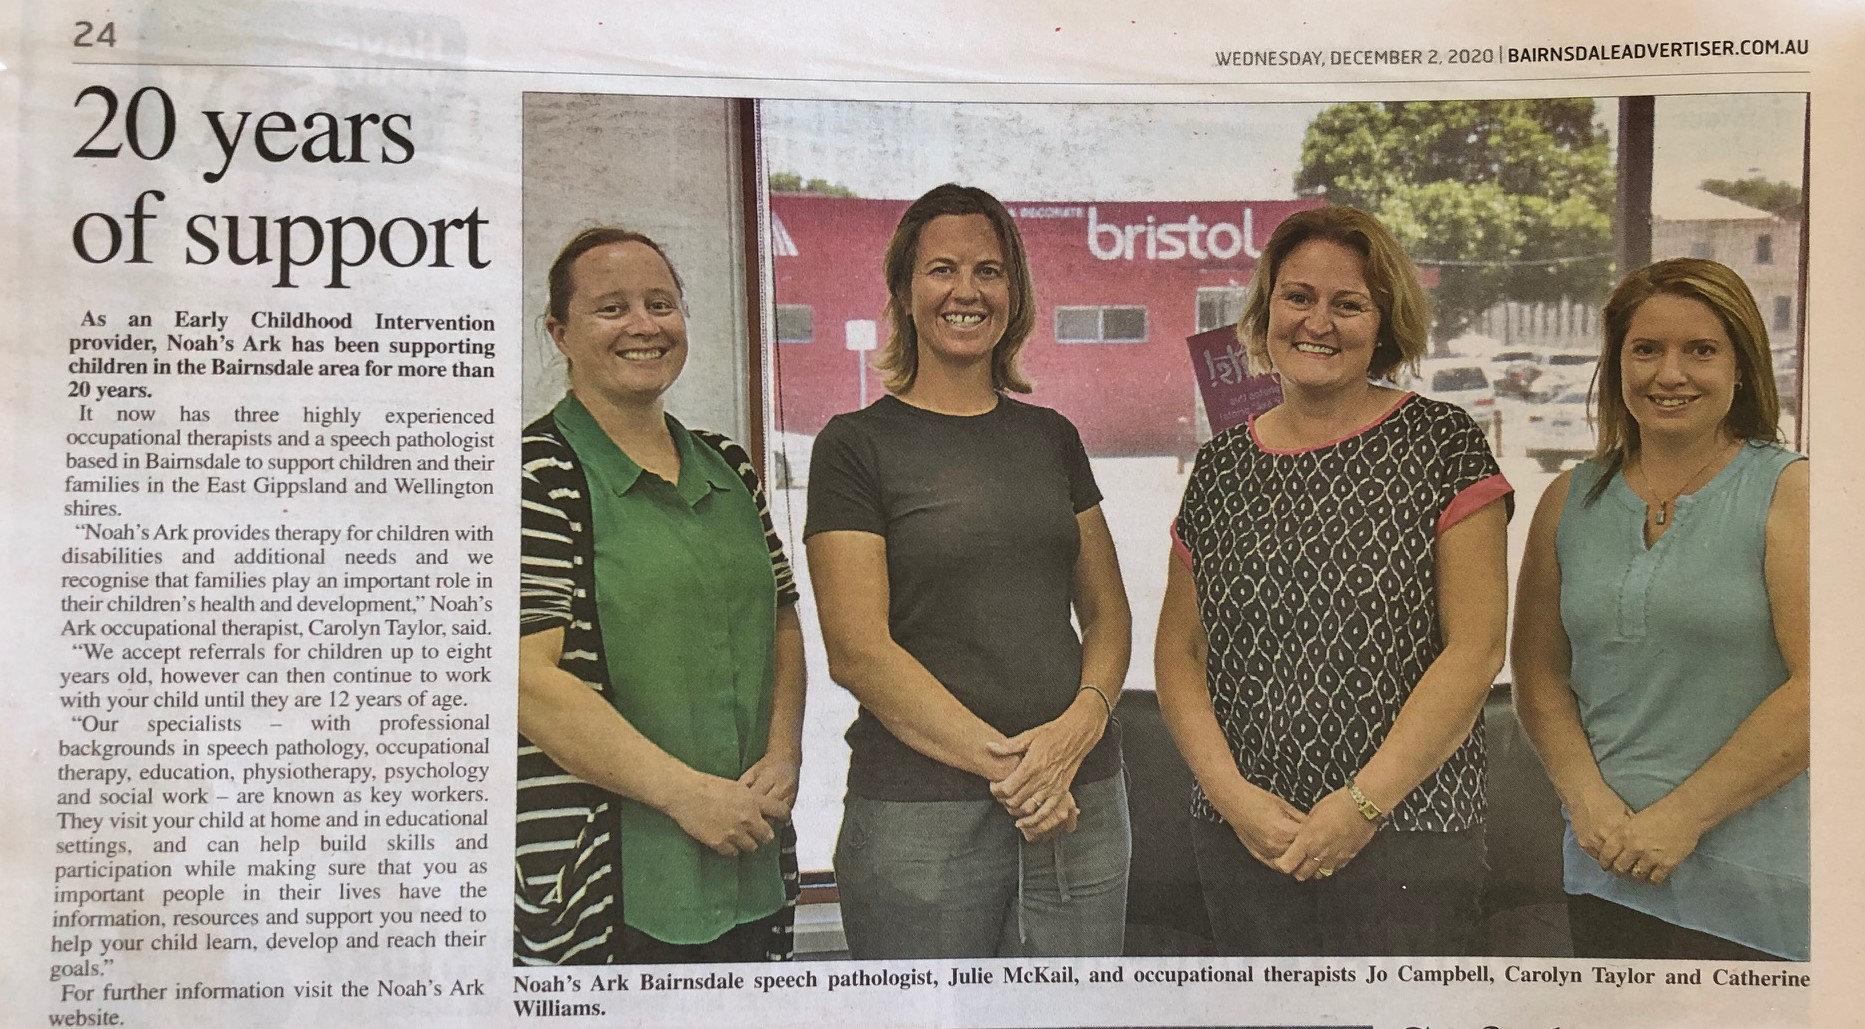 Four therapists in the Bairnsdale Advertiser newspaper